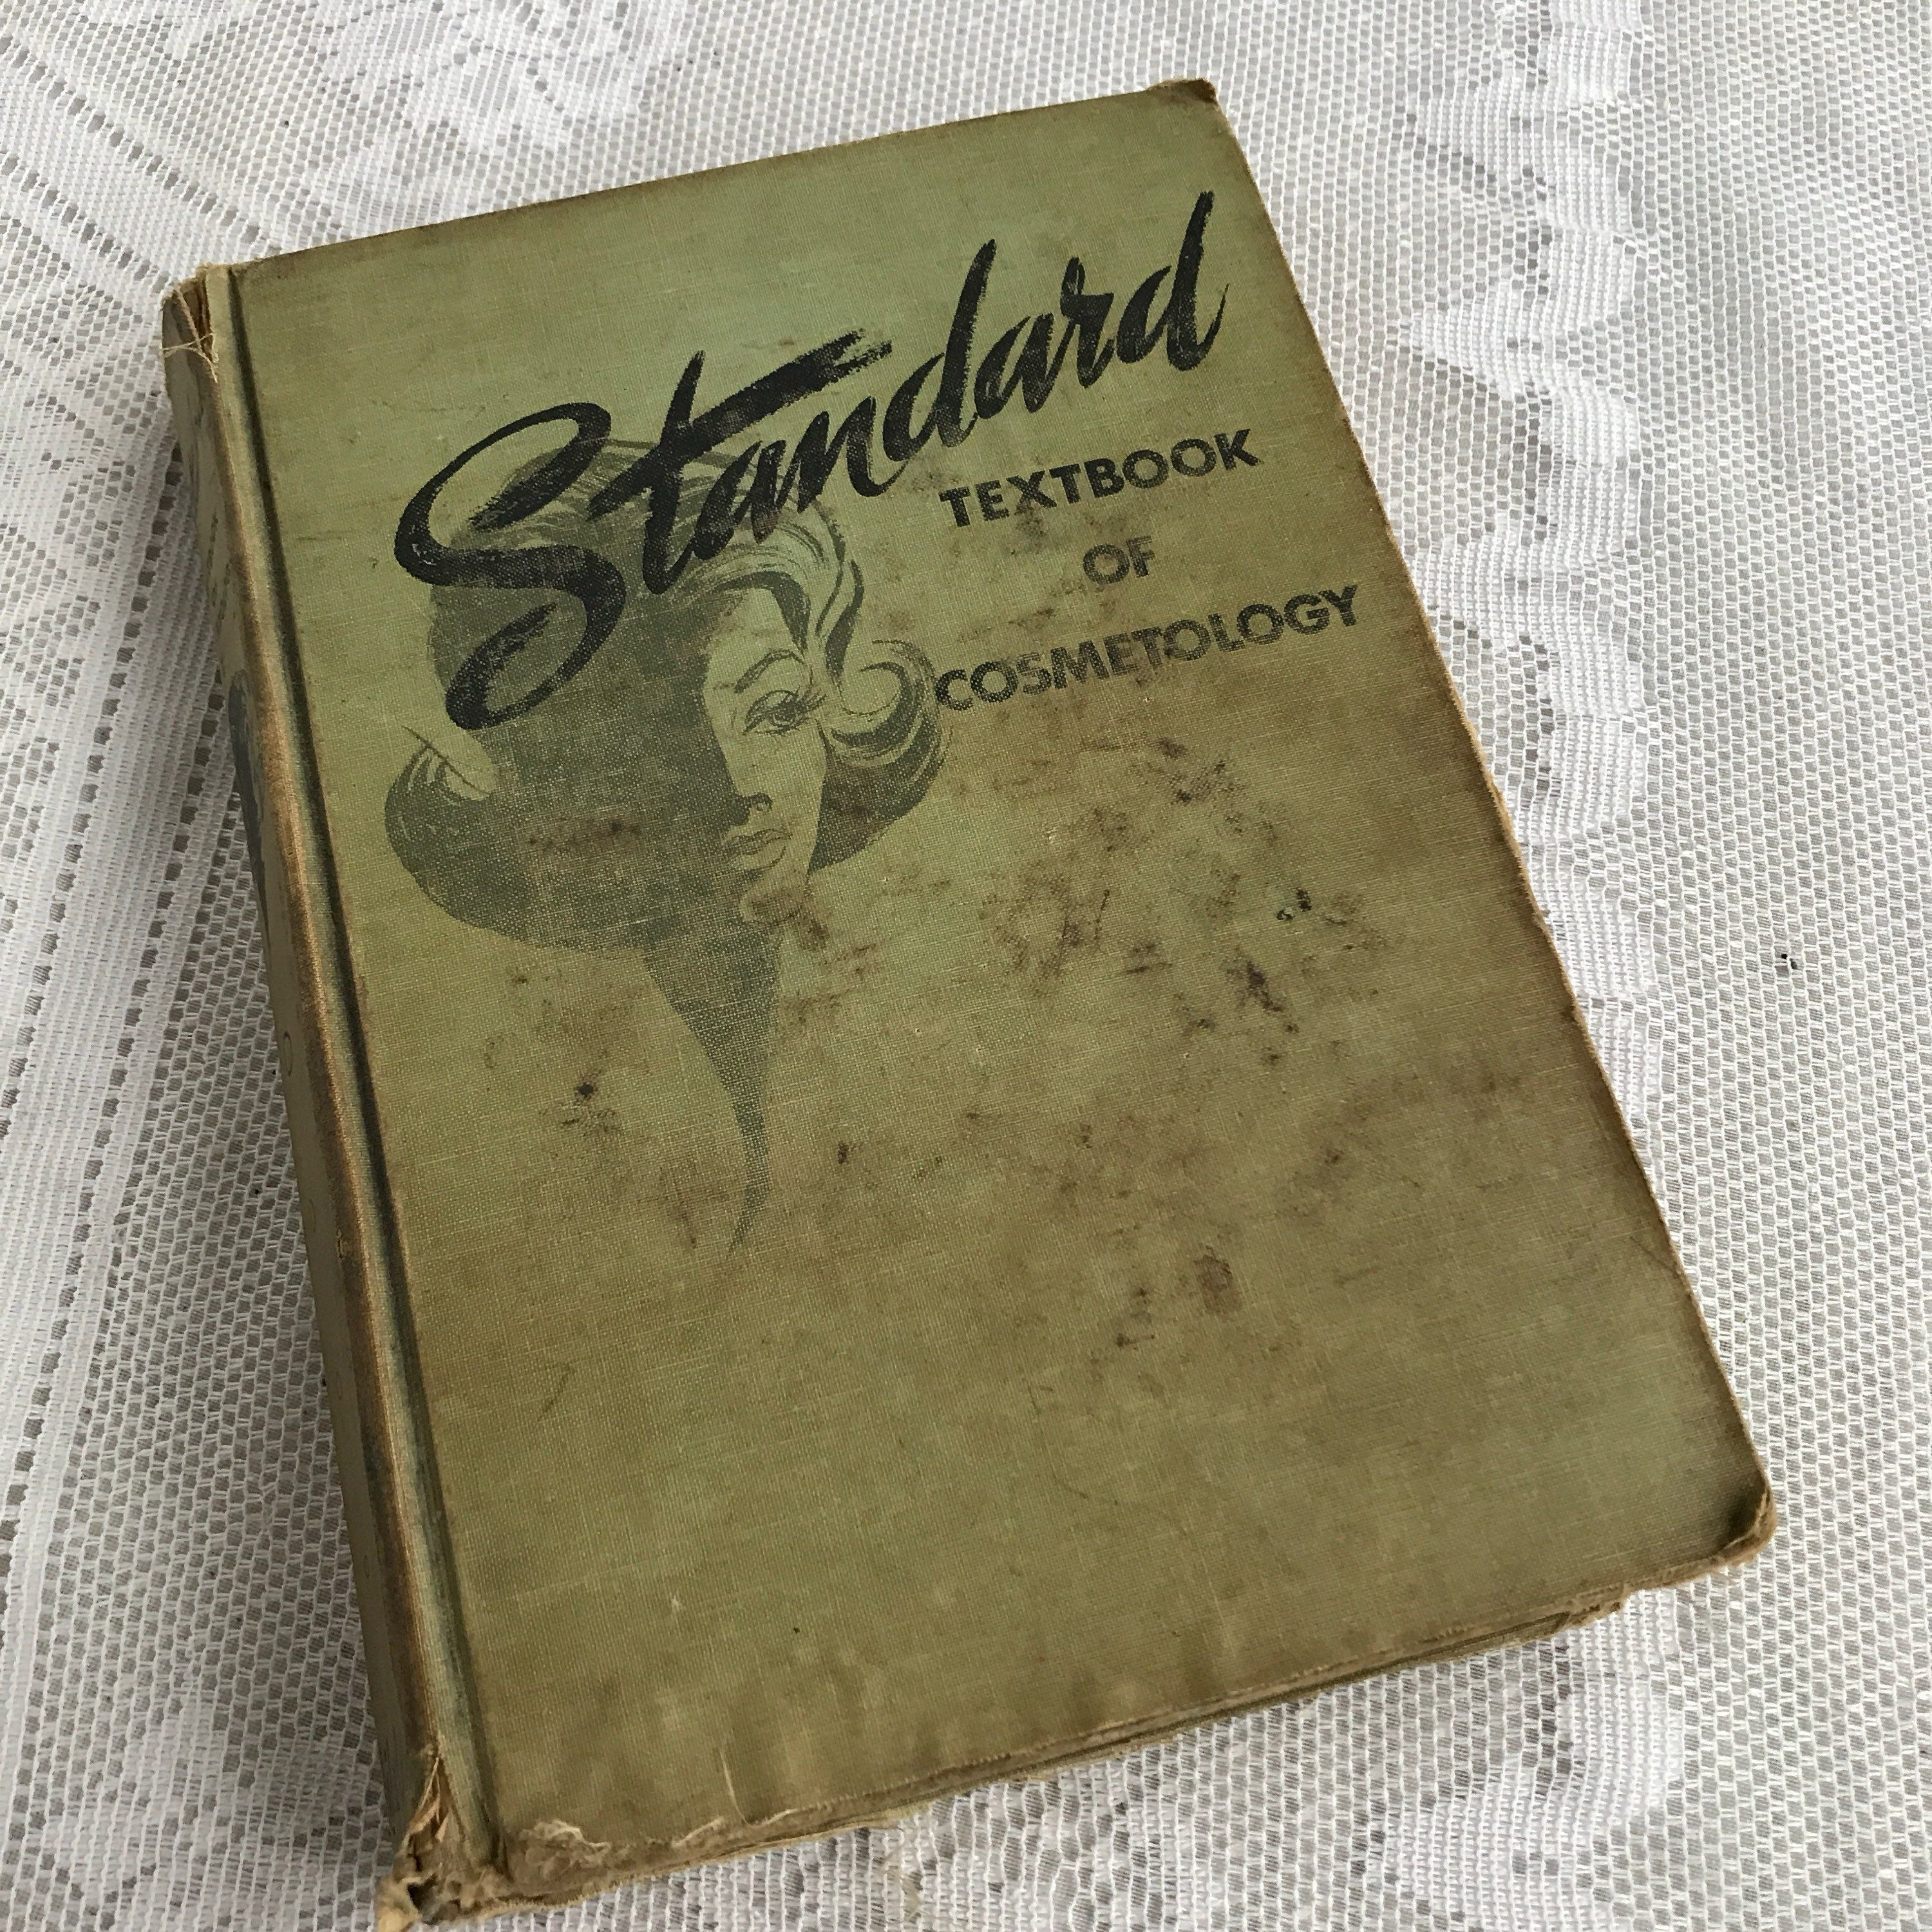 Standard Textbook Of Cosmetology Vintage Hardcover